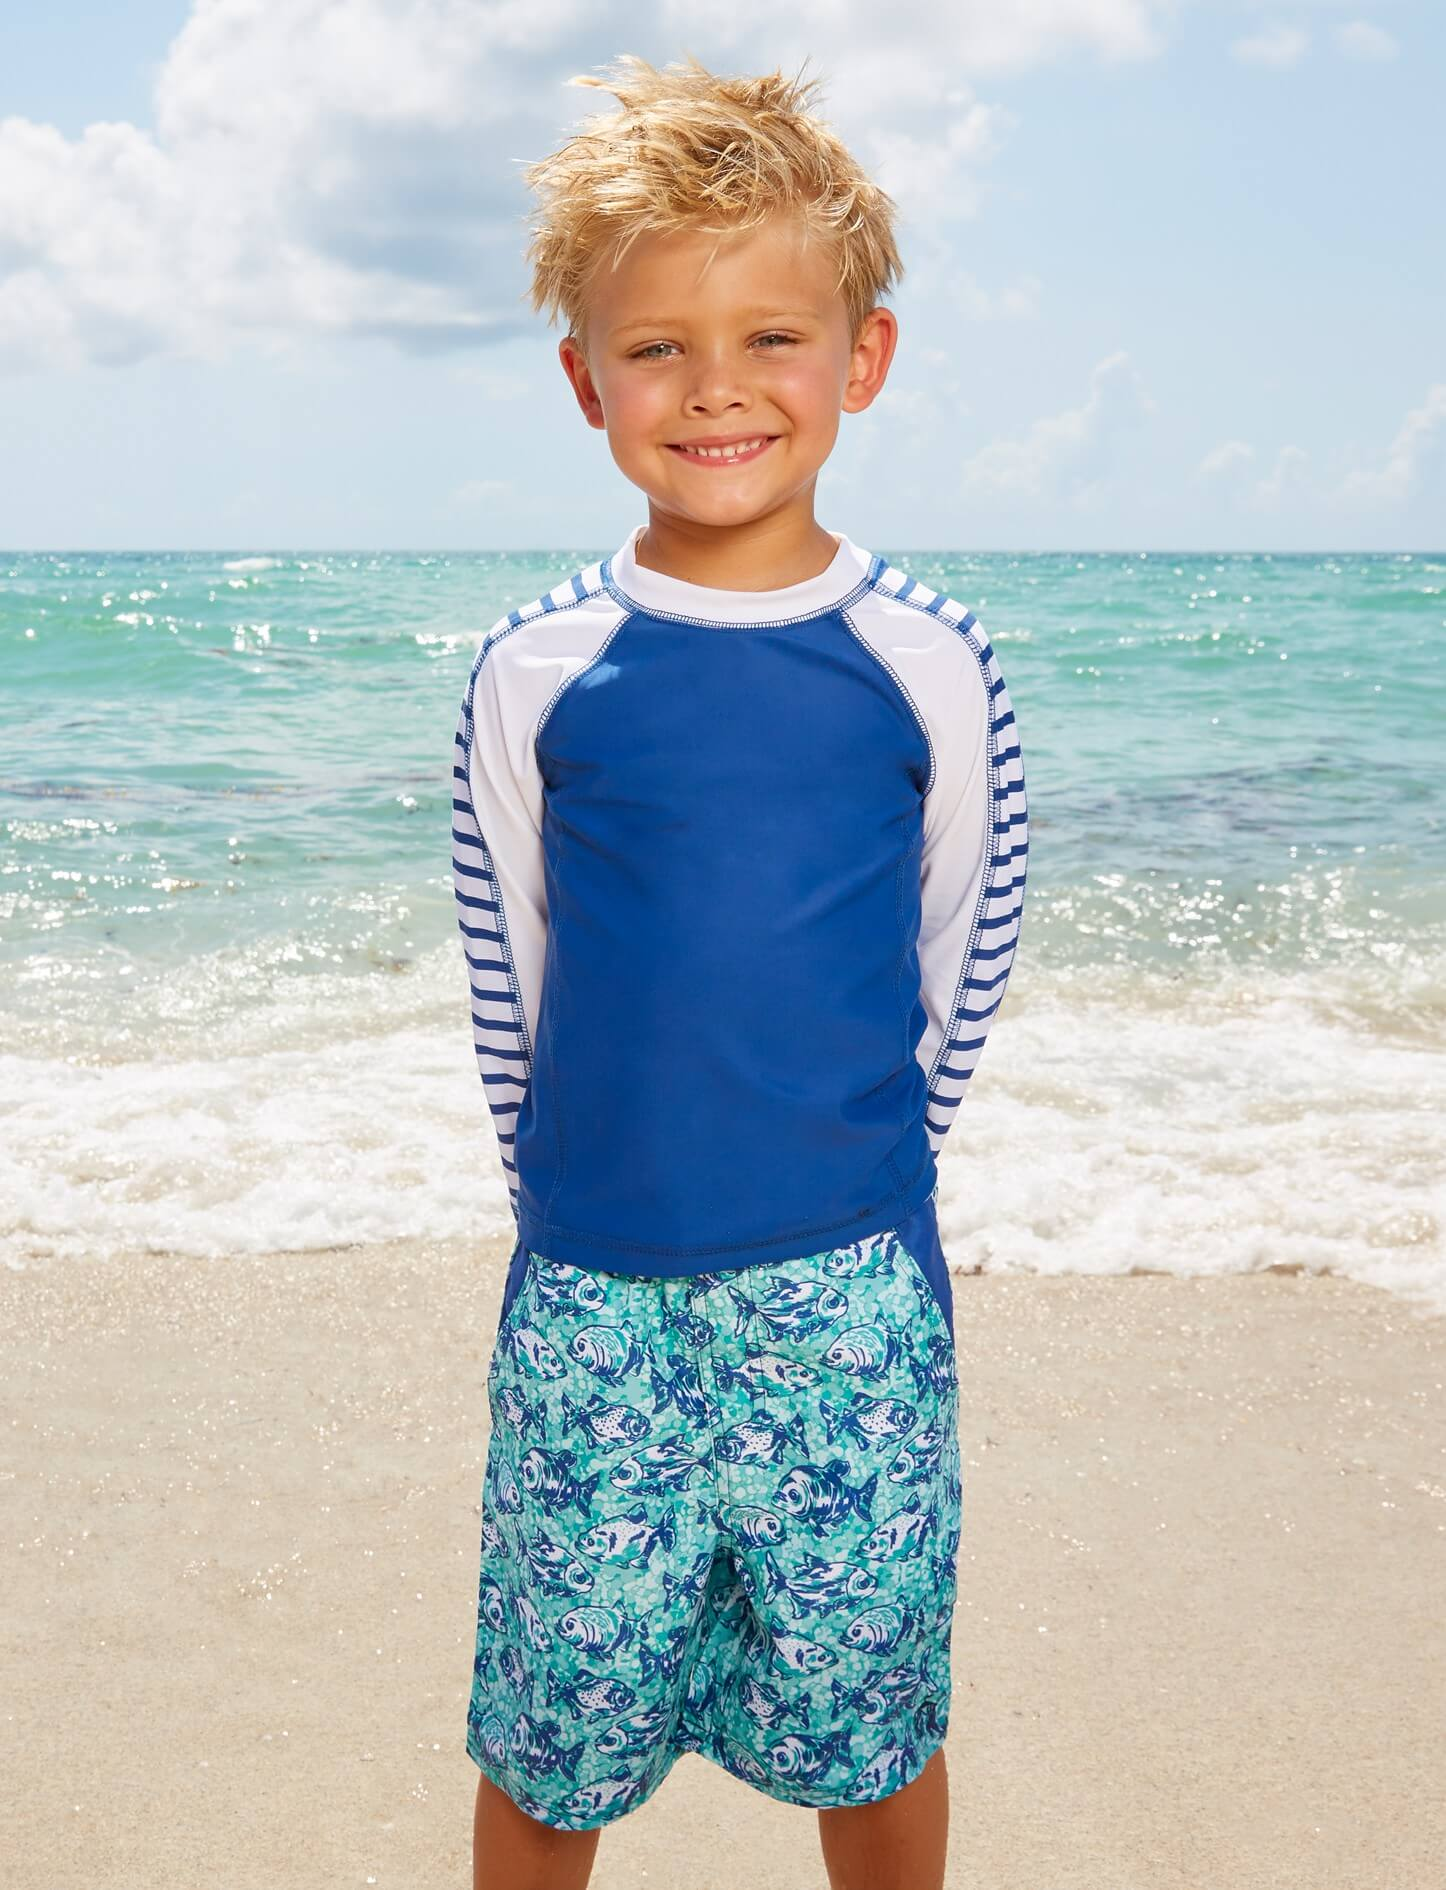 Stylish Sun Protective Swimwear and Rash Guards | The Best Summer Essentials for Moms, Toddlers and Kids